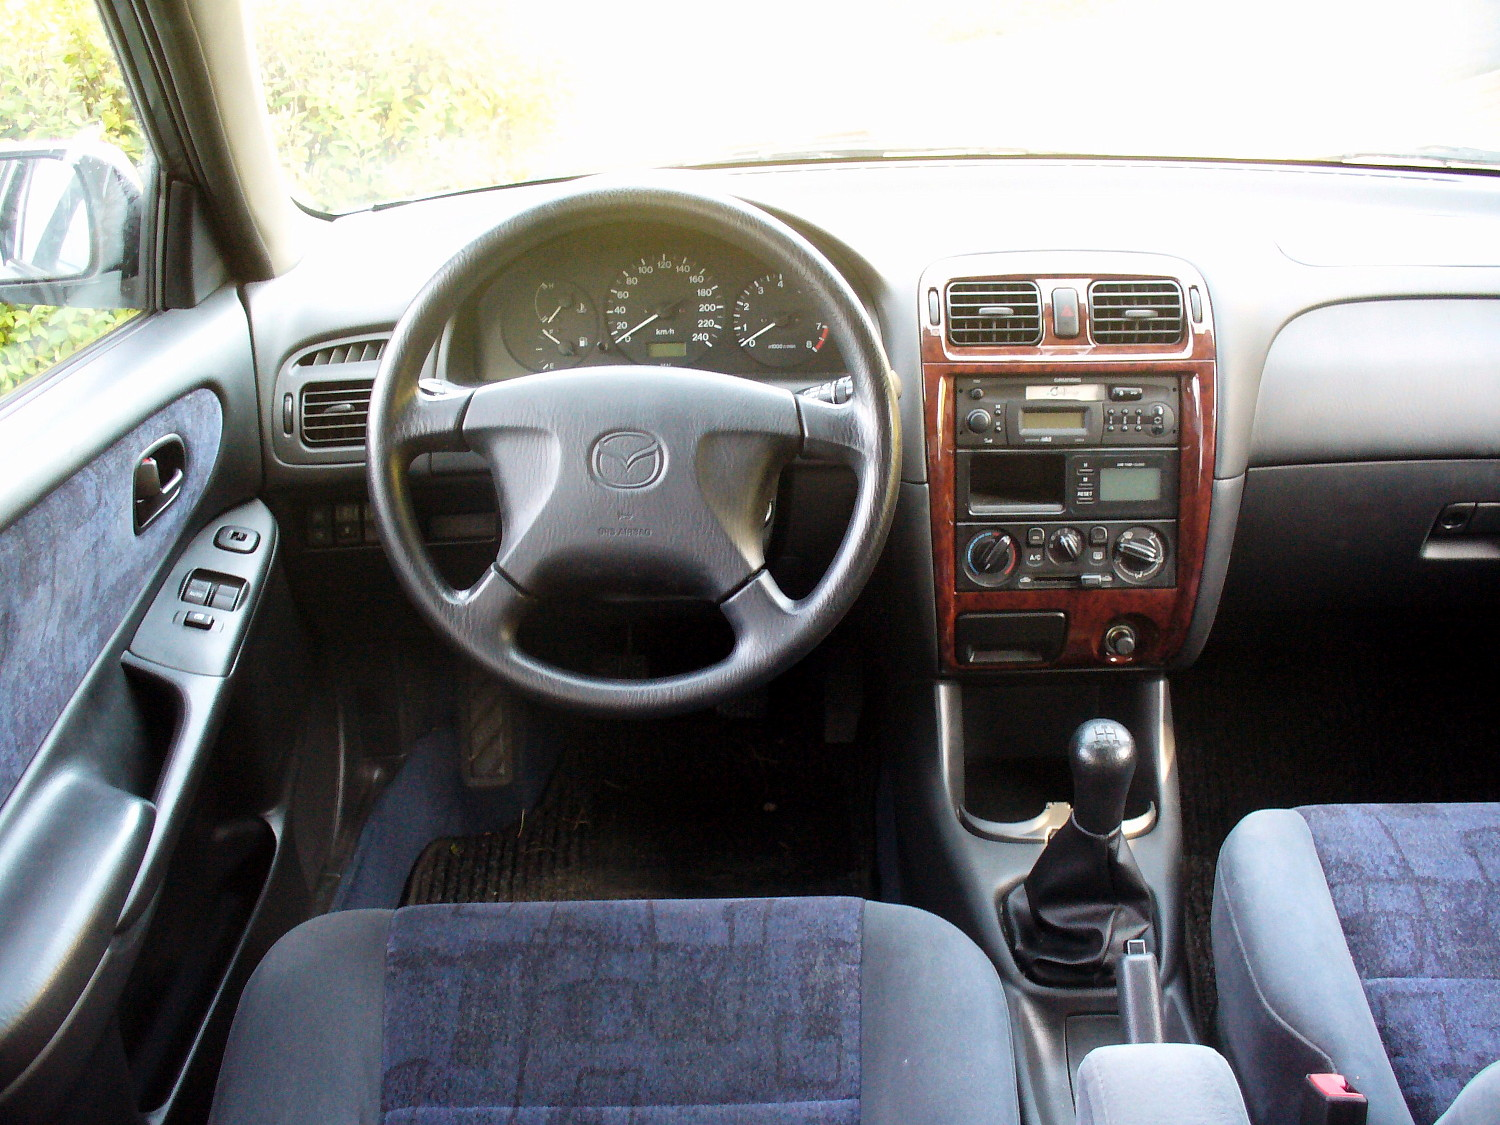 File Mazda 626 Gf 2 0 Interieur Jpg Wikimedia Commons